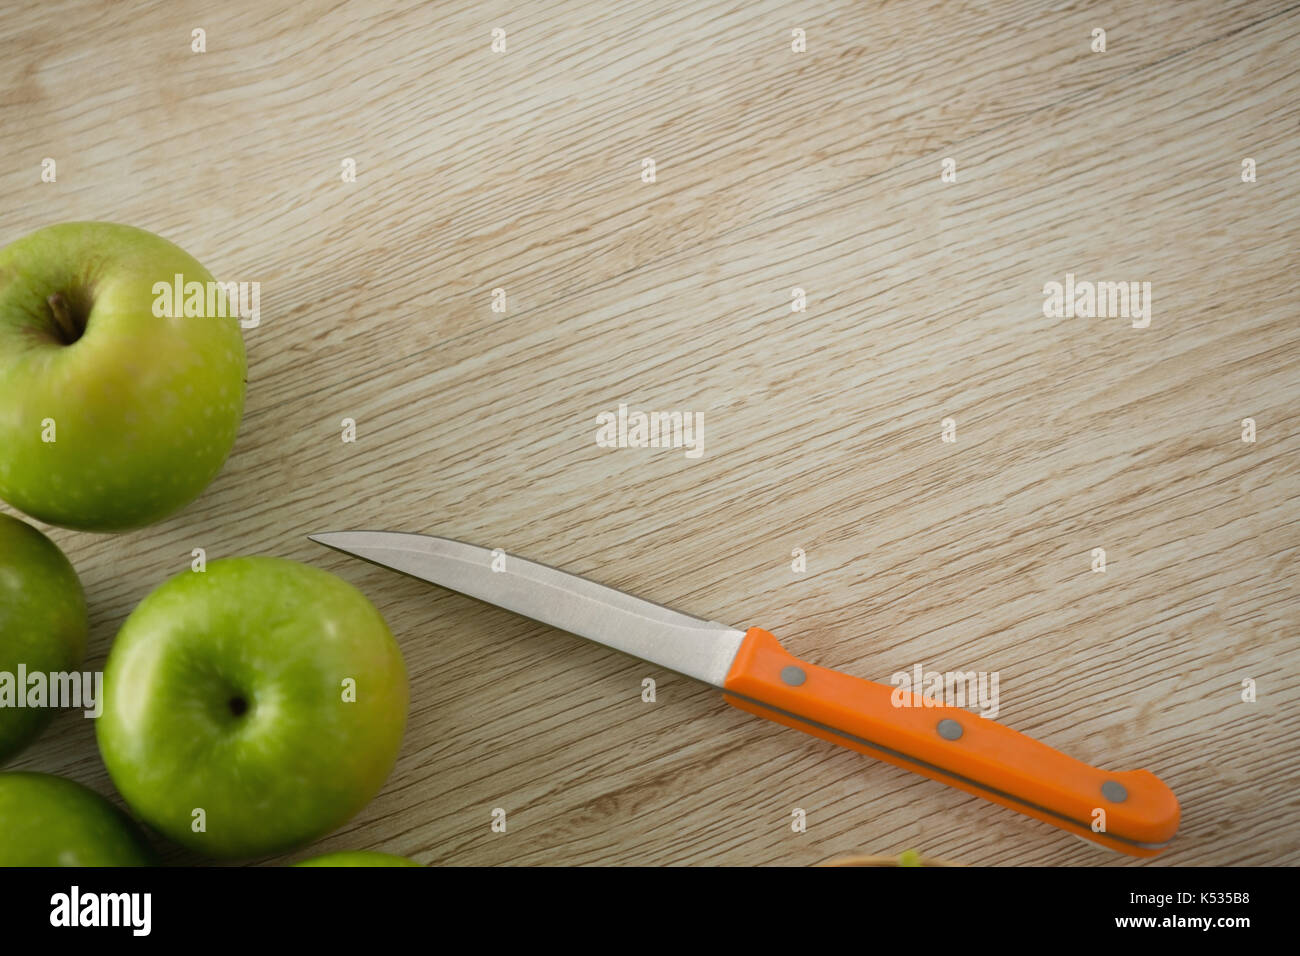 Overhead view of granny smith apple by kitchen knife on wooden table - Stock Image